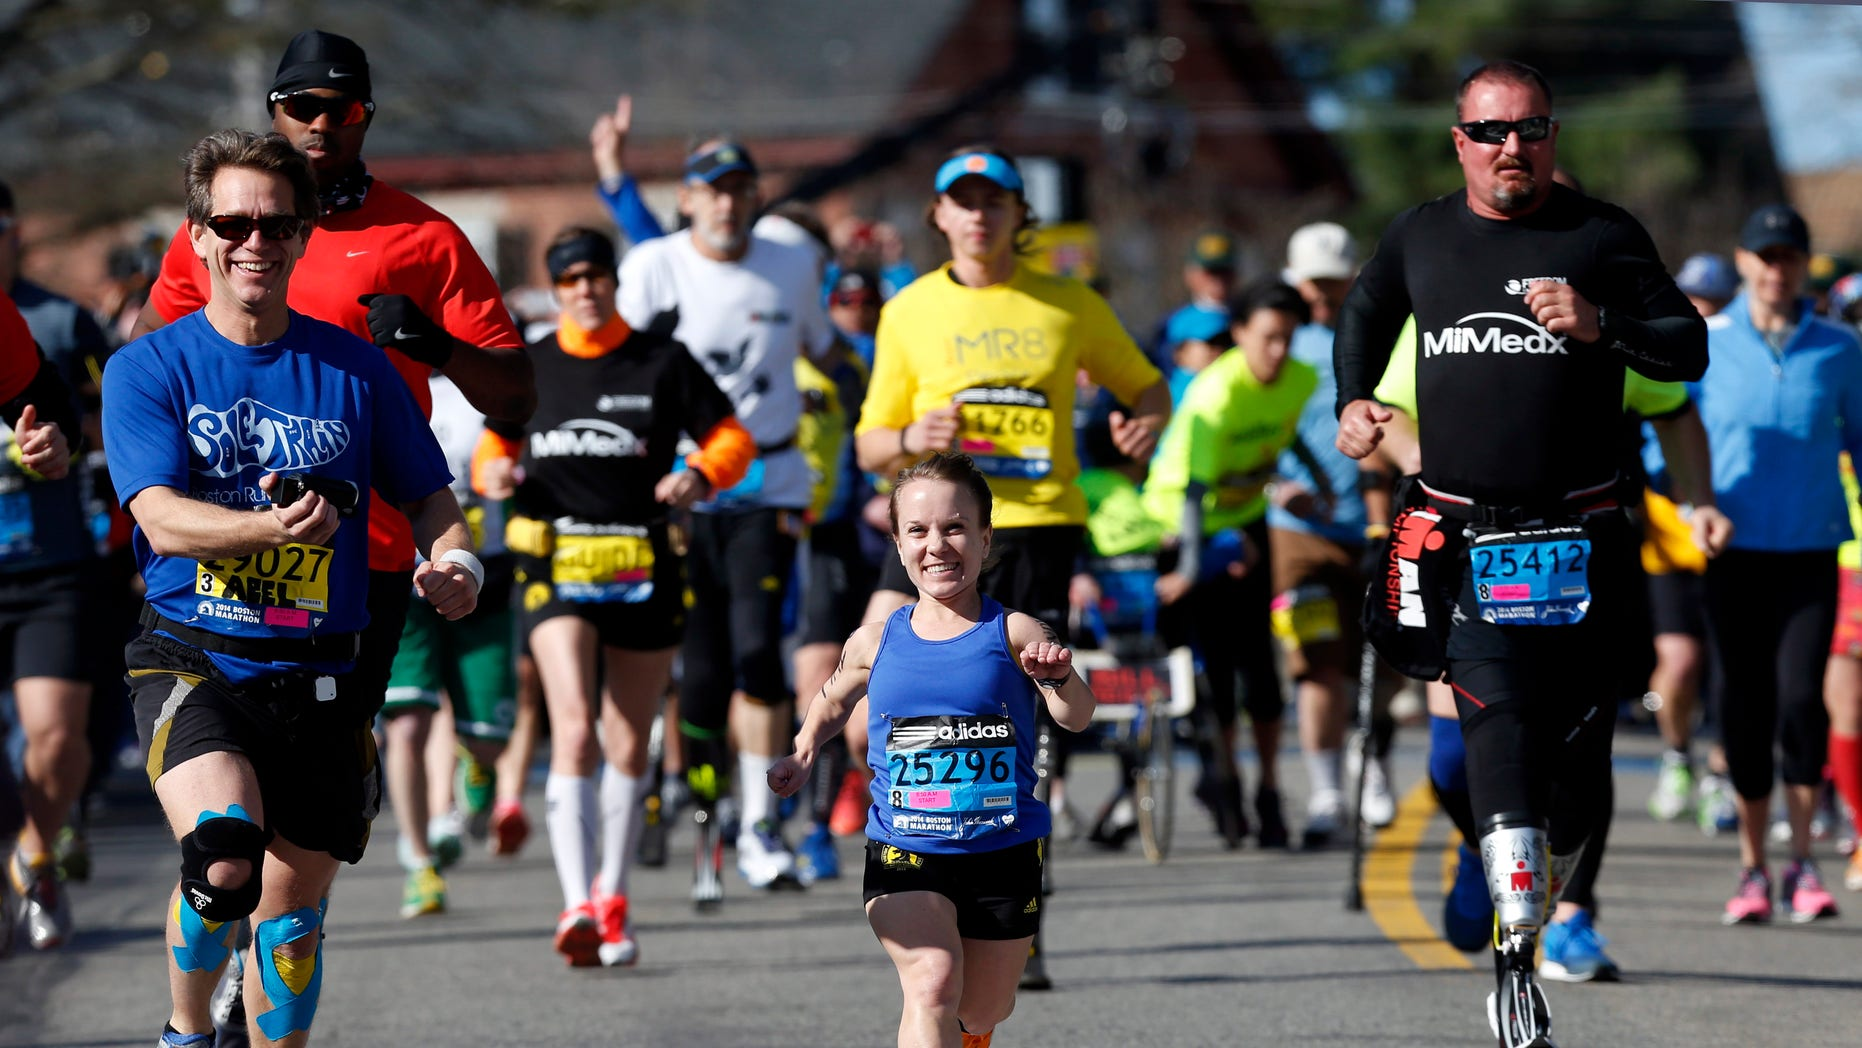 Runners are seen at the Boston Marathon in Hopkinton, Mass.